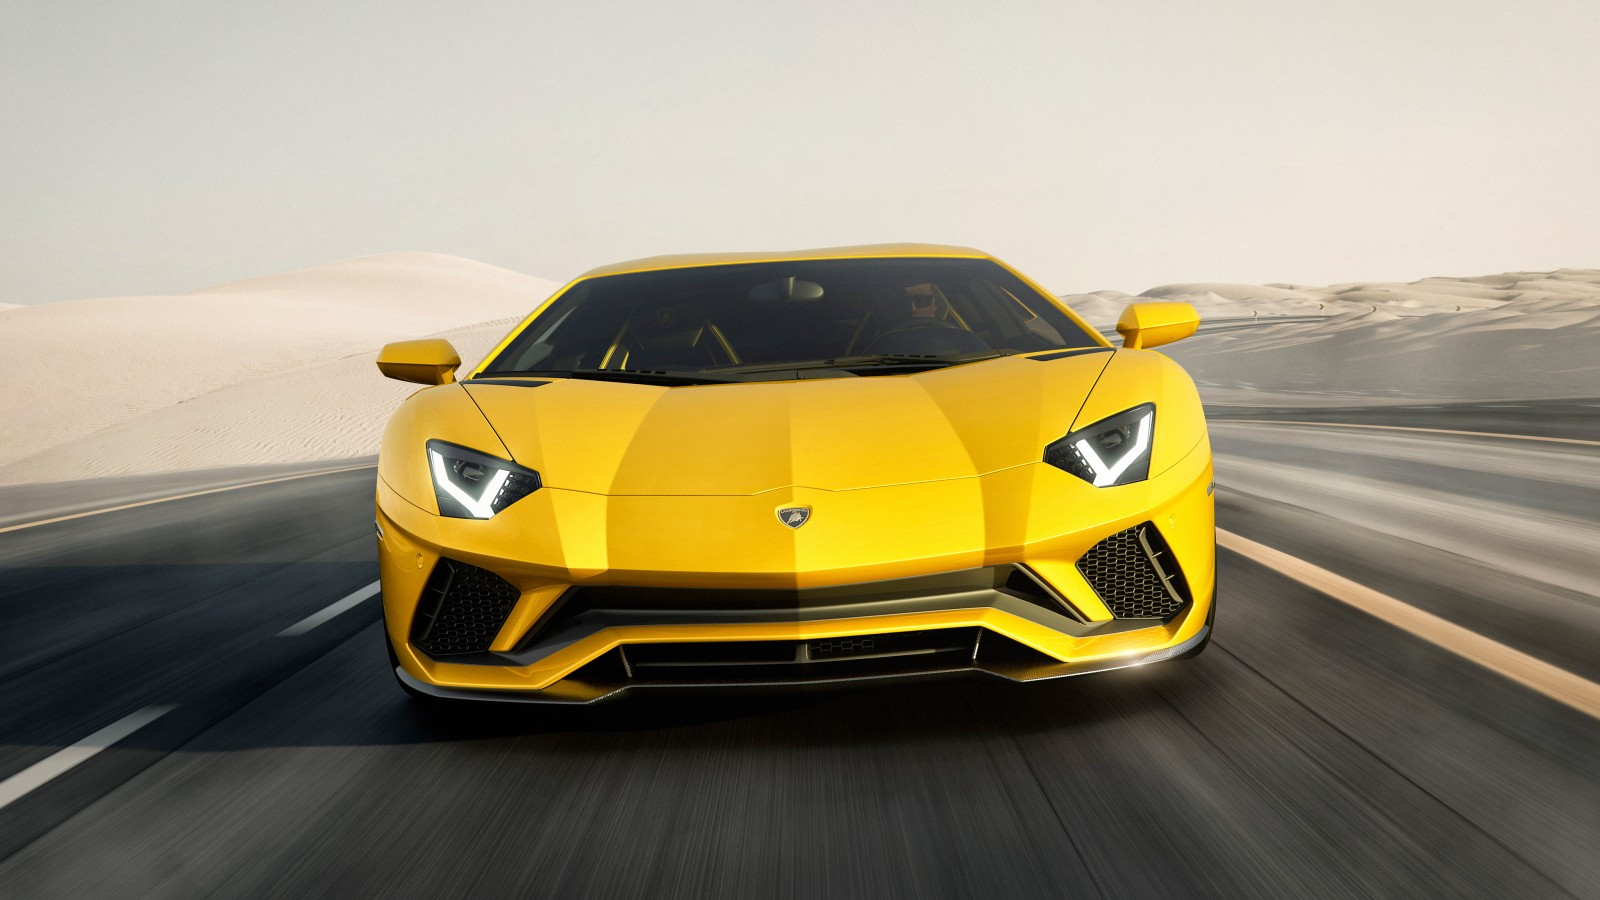 2017 Lamborghini Aventador S 4 Wallpaper | HD Car ...